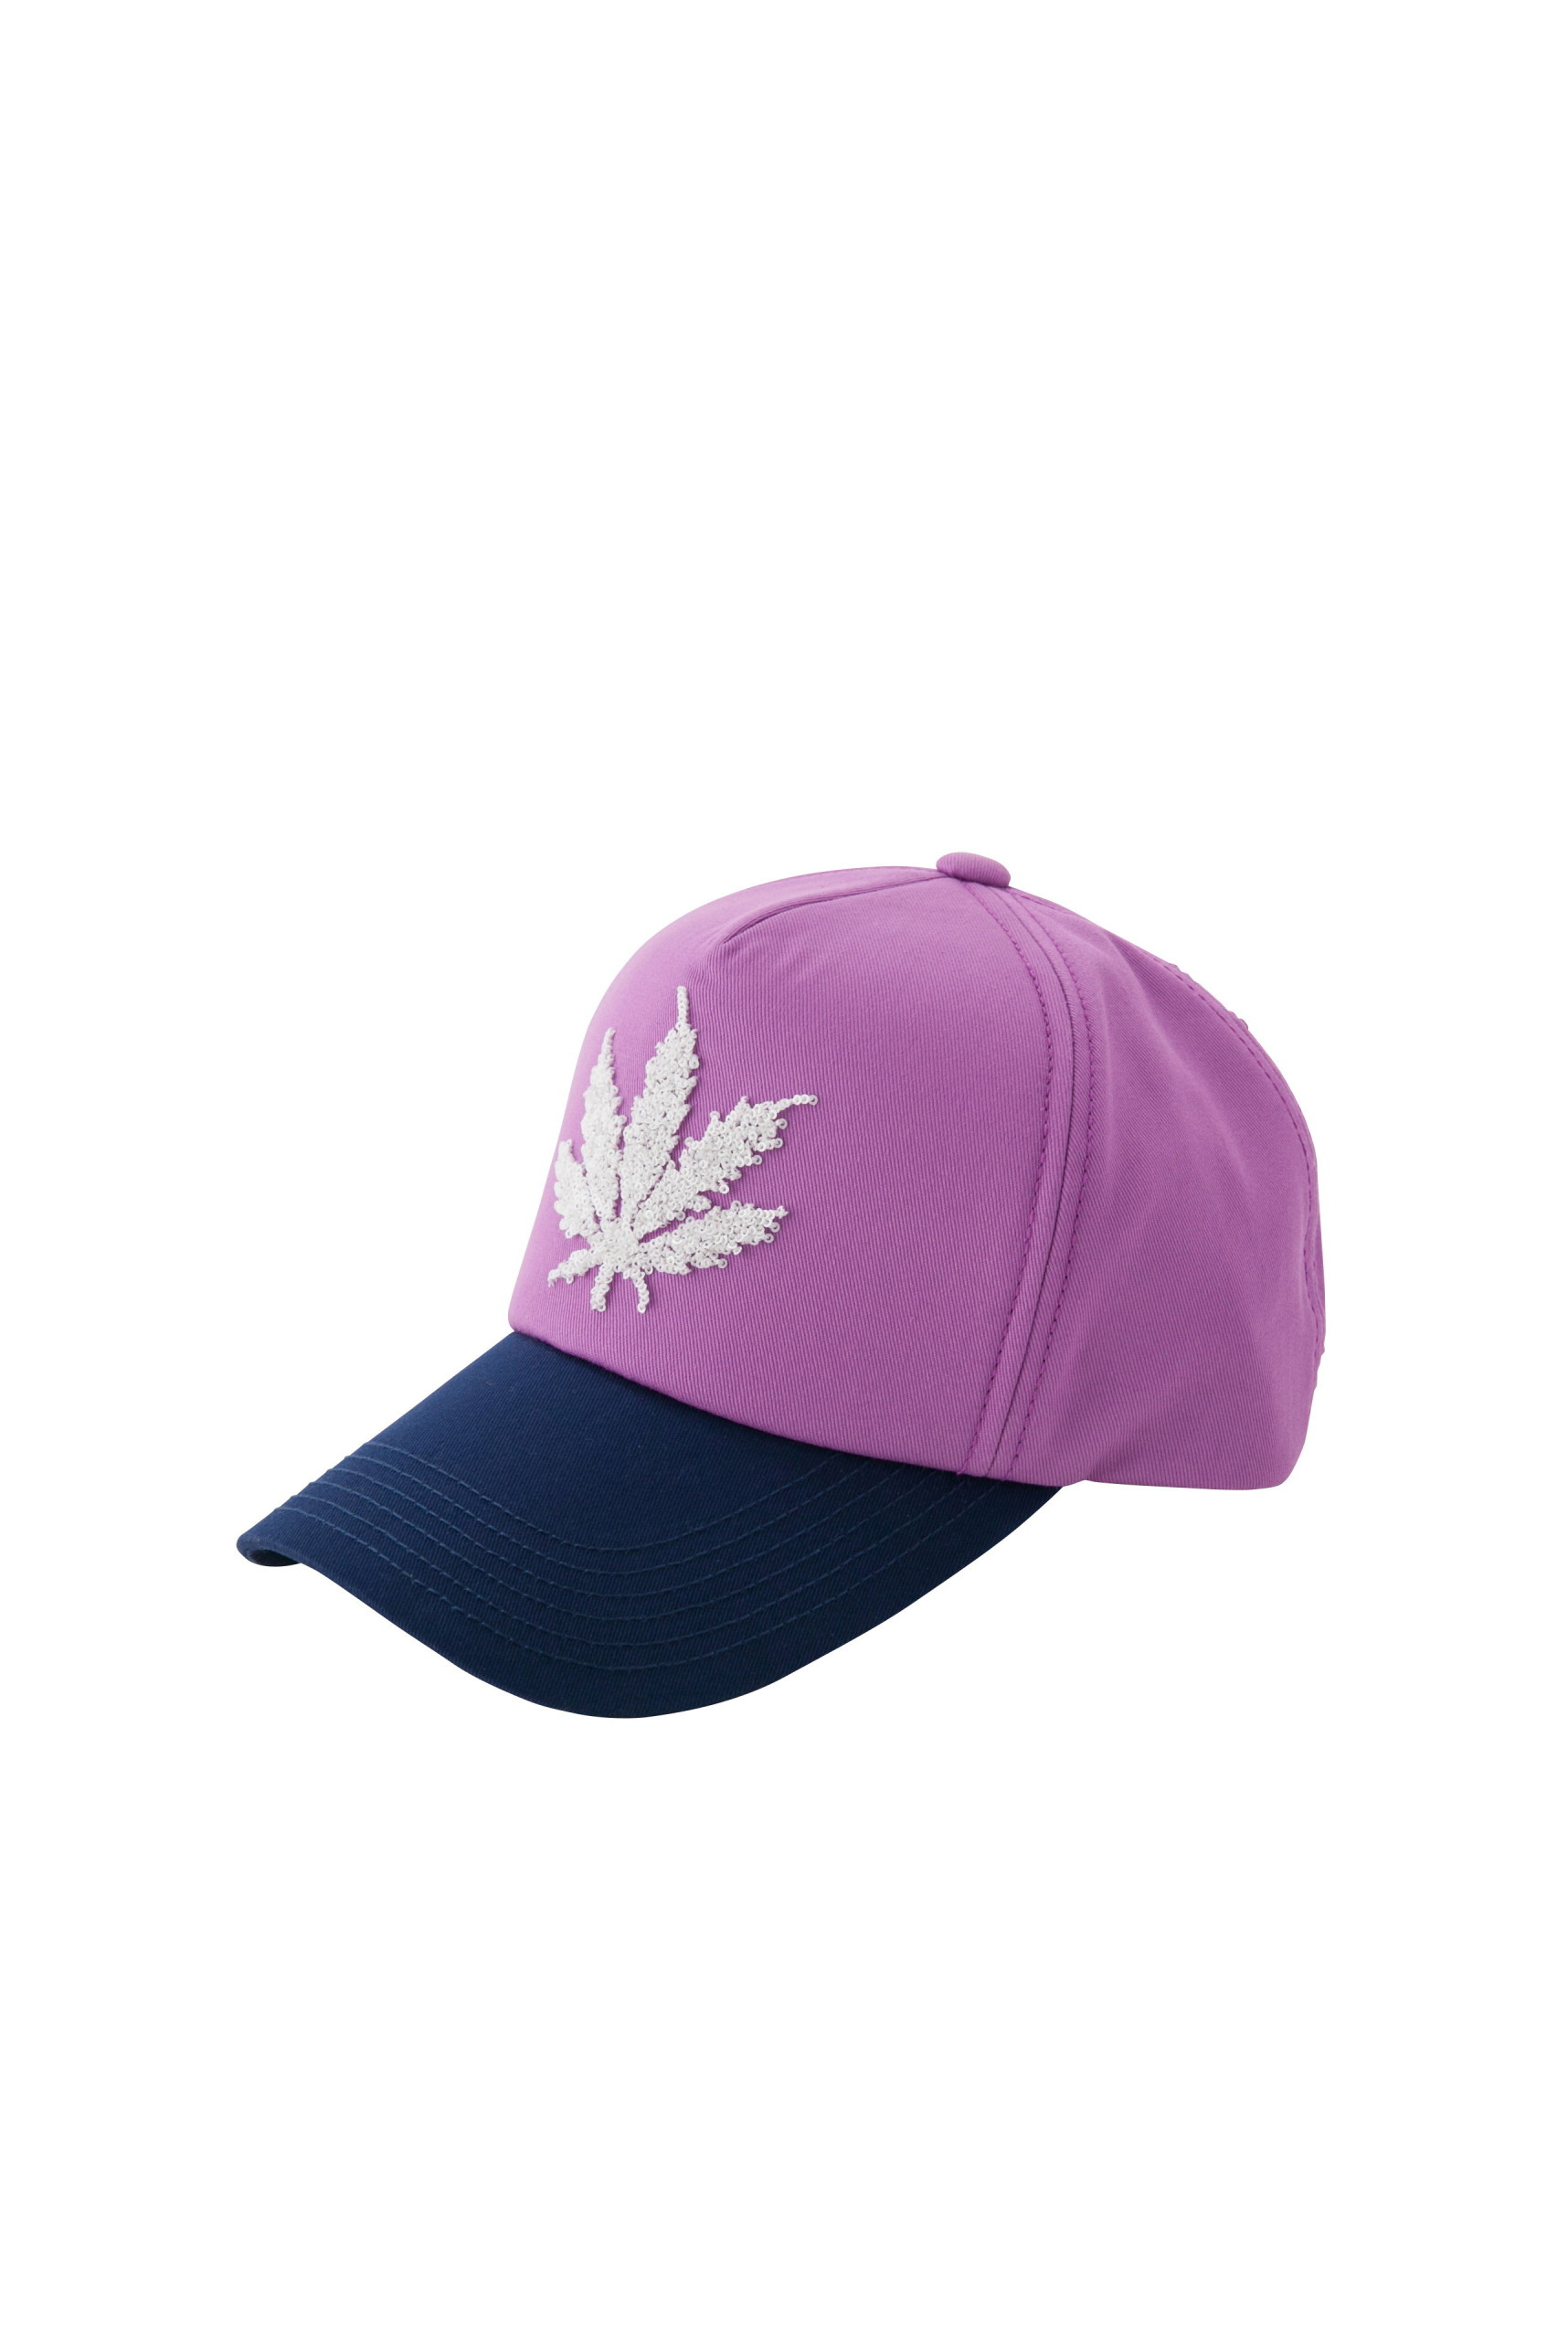 CAP WITH 3D SEQUIN LEAF EMBROIDERY